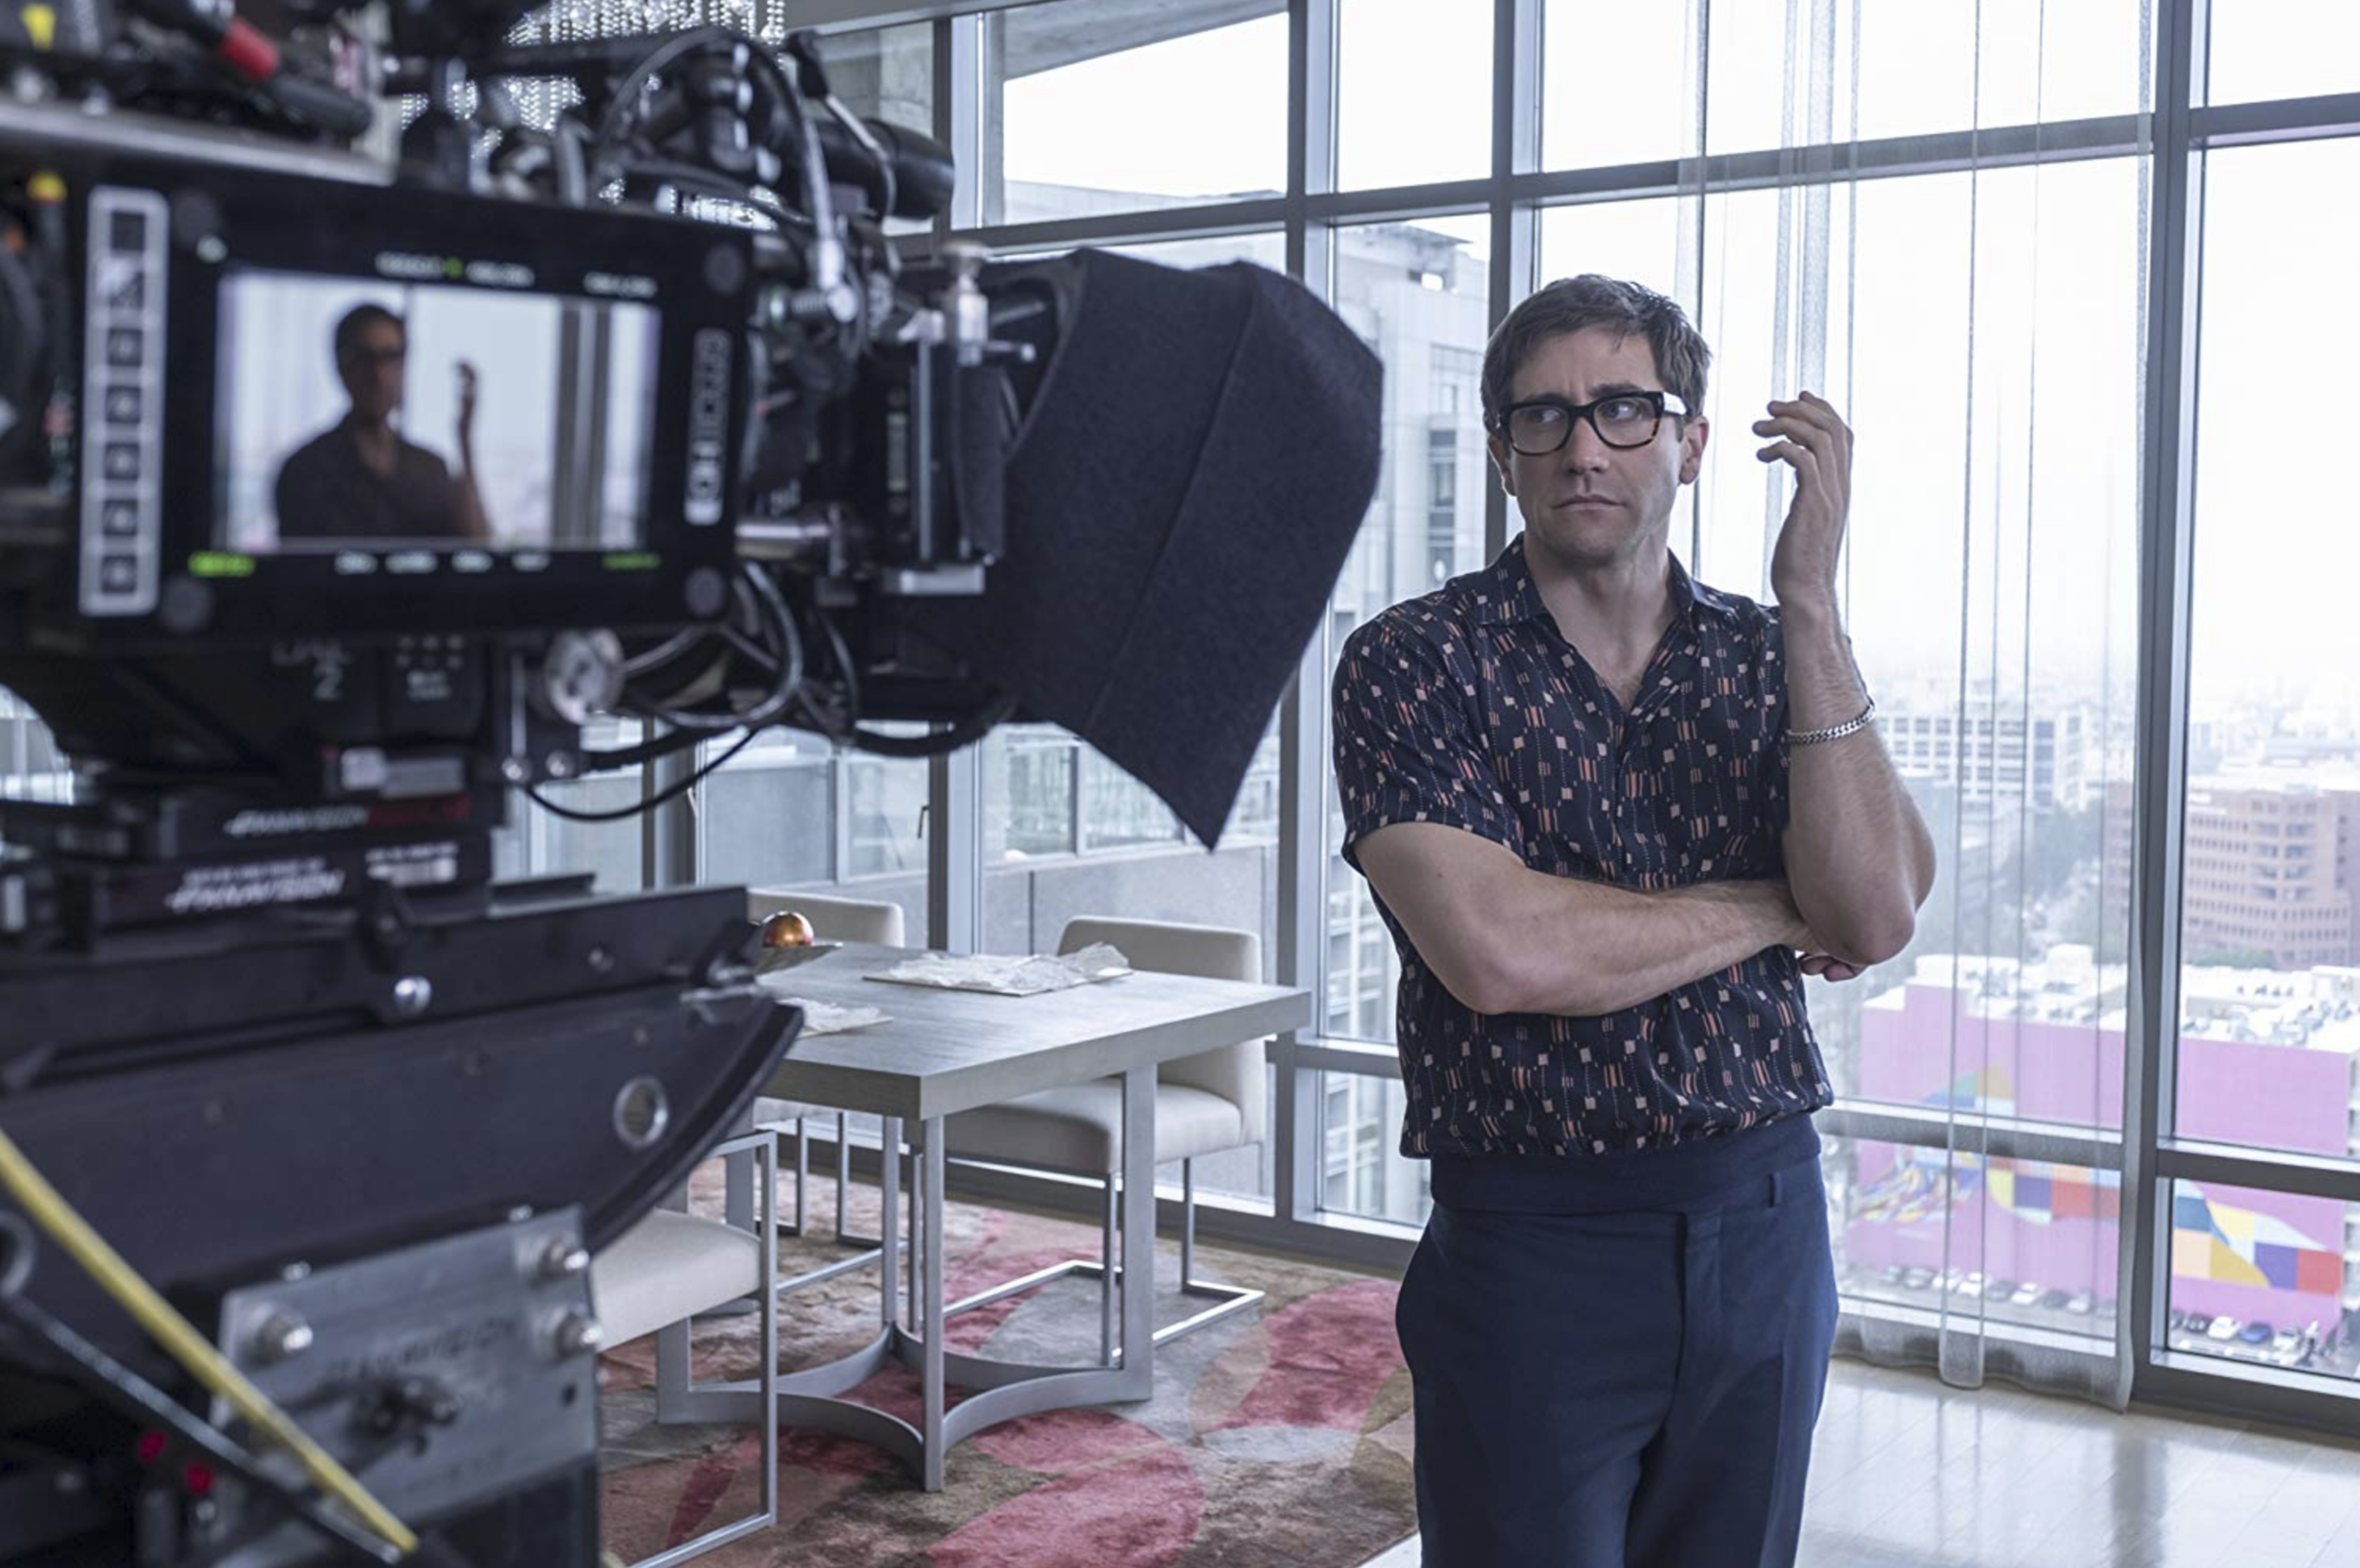 Jake Gyllenhaal behind the scenes in  Velvet Buzzsaw  (2019) - Courtesy of Claudette Barius/Netflix